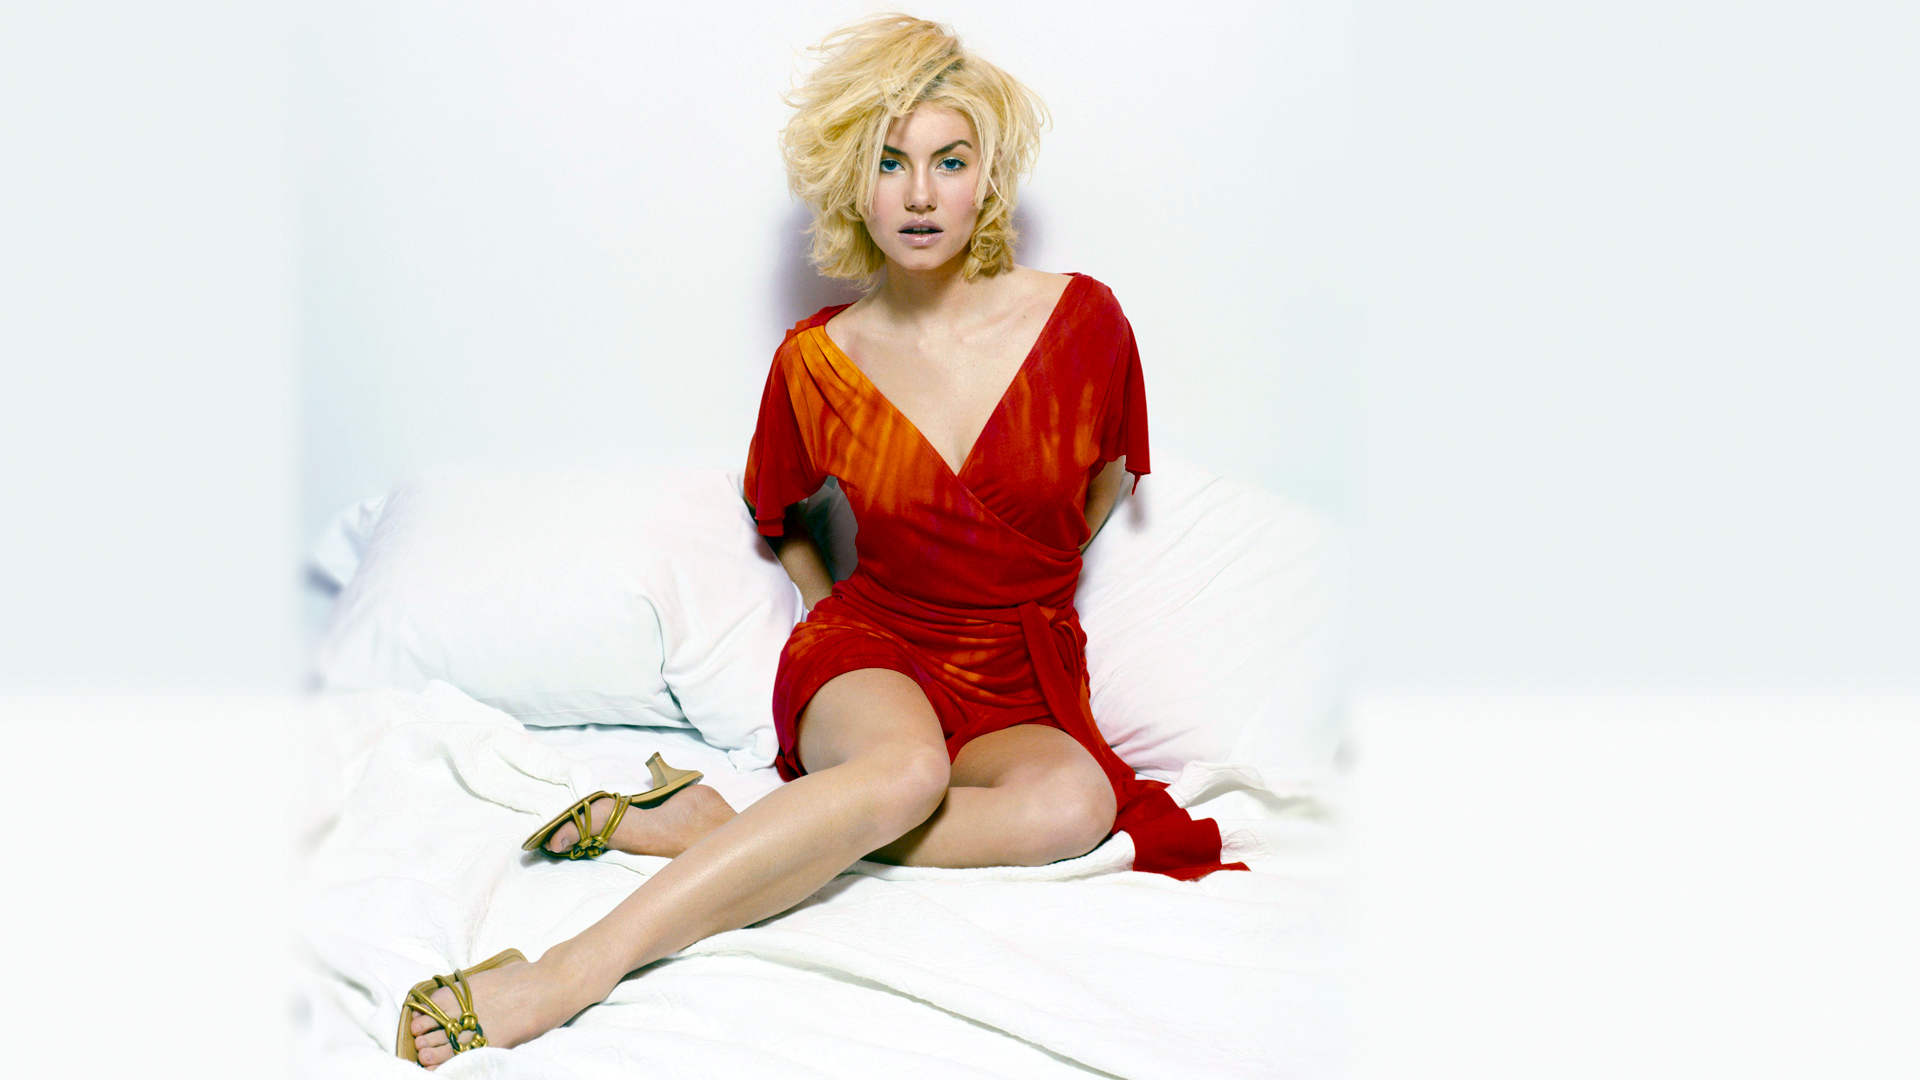 elisha-cuthbert-nude-wallpapers-sex-with-coloured-girls